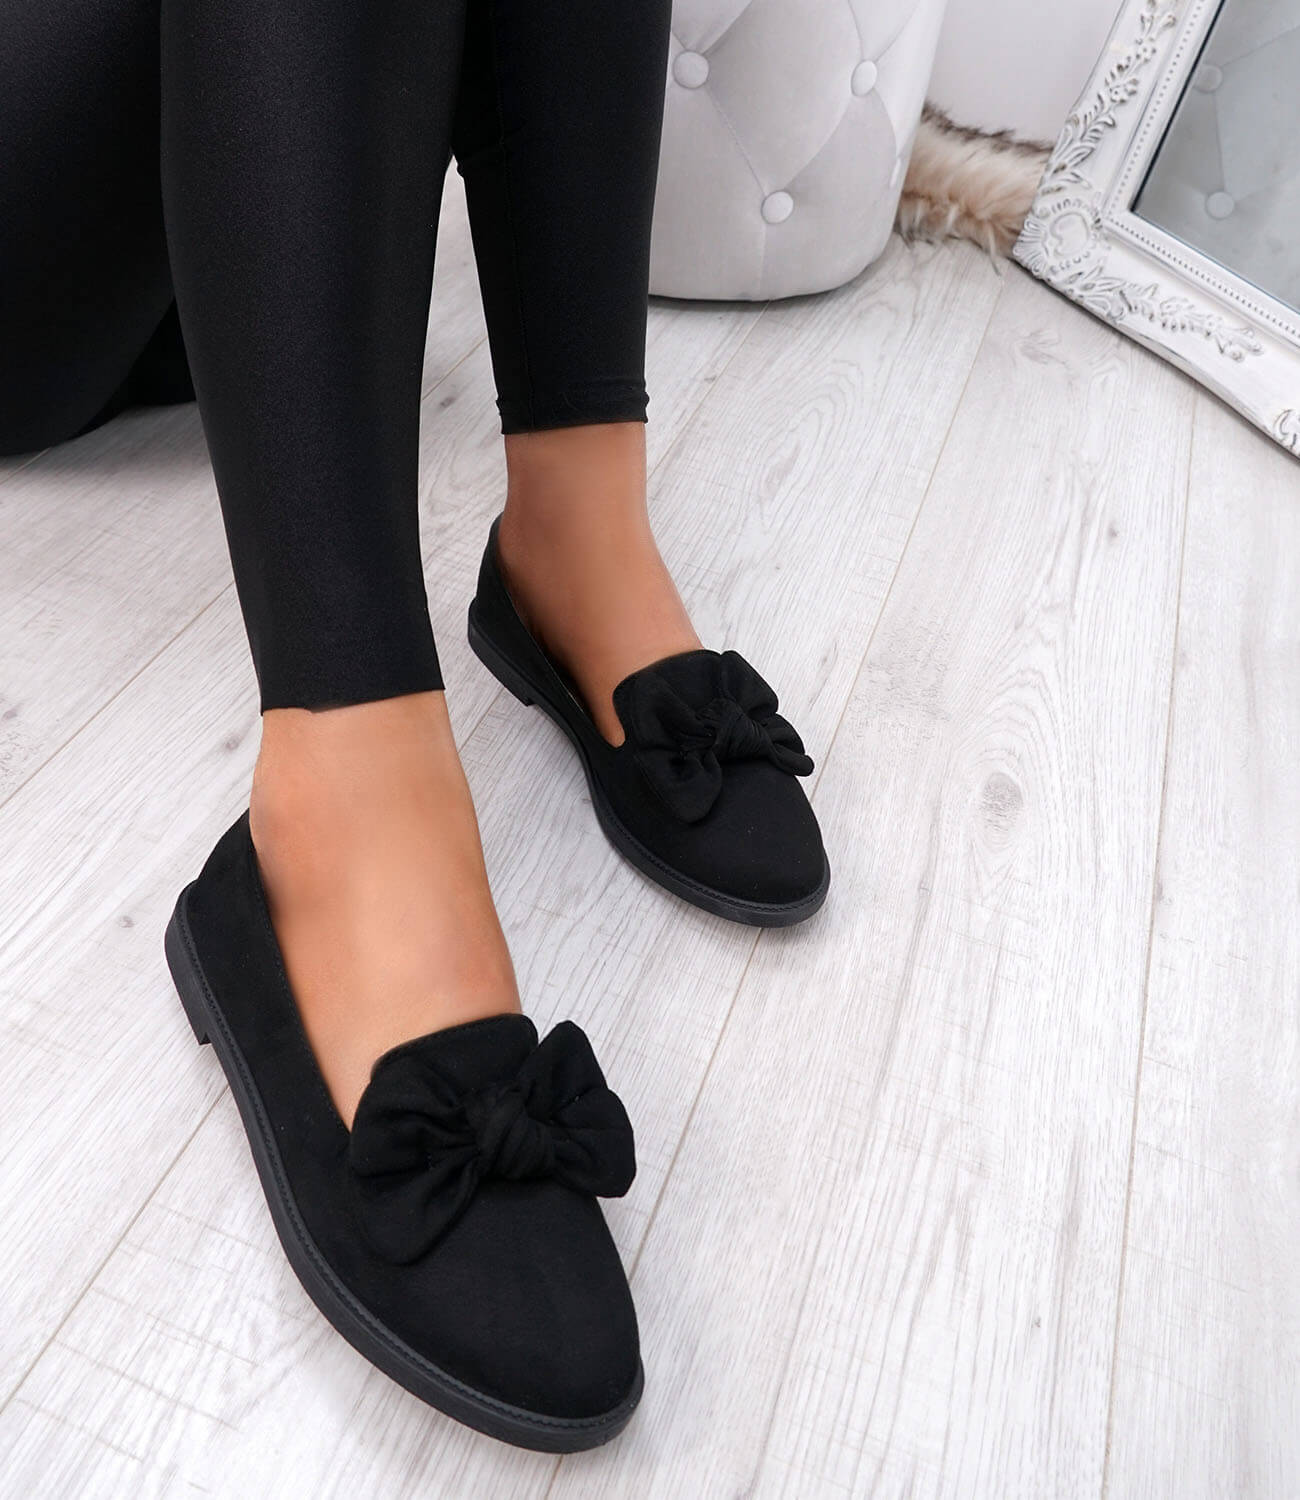 WOMENS-LADIES-BOW-BALLERINA-PUMPS-FLATS-SLIP-ON-BALLET-CASUAL-WORK-SHOES-SIZE thumbnail 15